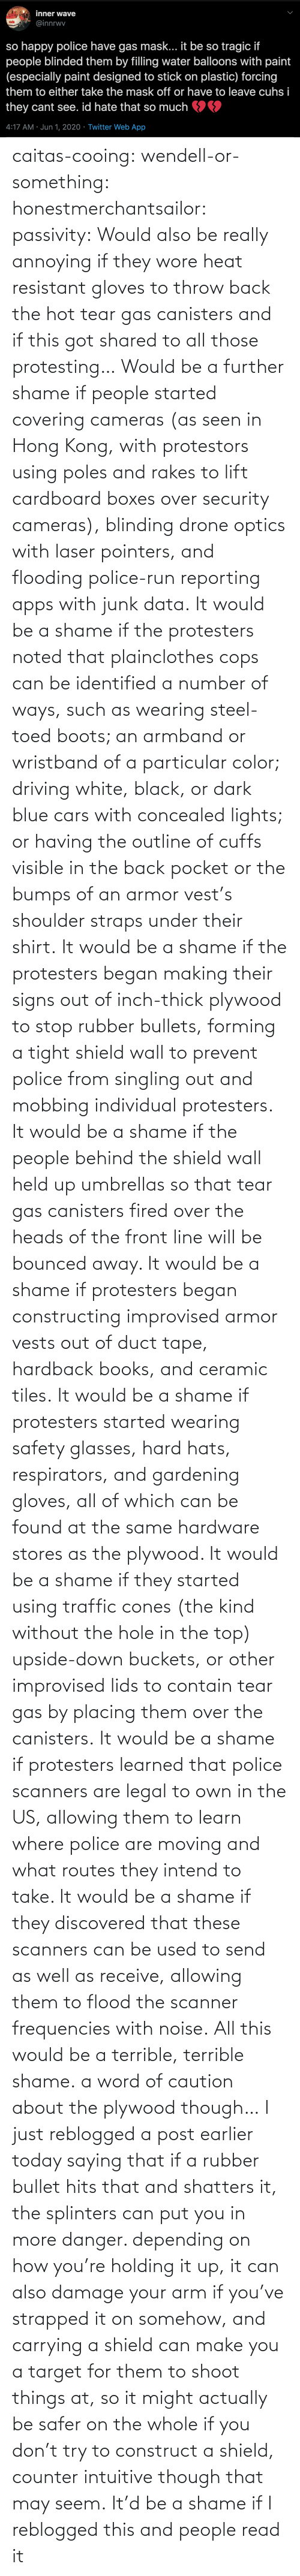 Boots: caitas-cooing:  wendell-or-something: honestmerchantsailor:  passivity: Would also be really annoying if they wore heat resistant gloves to throw back the hot tear gas canisters and if this got shared to all those protesting… Would be a further shame if people started covering cameras (as seen in Hong Kong, with protestors using poles and rakes to lift cardboard boxes over security cameras), blinding drone optics with laser pointers, and flooding police-run reporting apps with junk data. It would be a shame if the protesters noted that plainclothes cops can be identified a number of ways, such as wearing steel-toed boots; an armband or wristband of a particular color; driving white, black, or dark blue cars with concealed lights; or having the outline of cuffs visible in the back pocket or the bumps of an armor vest's shoulder straps under their shirt. It would be a shame if the protesters began making their signs out of inch-thick plywood to stop rubber bullets, forming a tight shield wall to prevent police from singling out and mobbing individual protesters. It would be a shame if the people behind the shield wall held up umbrellas so that tear gas canisters fired over the heads of the front line will be bounced away. It would be a shame if protesters began constructing improvised armor vests out of duct tape, hardback books, and ceramic tiles. It would be a shame if protesters started wearing safety glasses, hard hats, respirators, and gardening gloves, all of which can be found at the same hardware stores as the plywood. It would be a shame if they started using traffic cones (the kind without the hole in the top) upside-down buckets, or other improvised lids to contain tear gas by placing them over the canisters. It would be a shame if protesters learned that police scanners are legal to own in the US, allowing them to learn where police are moving and what routes they intend to take. It would be a shame if they discovered that these scanners can be used to send as well as receive, allowing them to flood the scanner frequencies with noise. All this would be a terrible, terrible shame.    a word of caution about the plywood though… I just reblogged a post earlier today saying that if a rubber bullet hits that and shatters it, the splinters can put you in more danger. depending on how you're holding it up, it can also damage your arm if you've strapped it on somehow, and carrying a shield can make you a target for them to shoot things at, so it might actually be safer on the whole if you don't try to construct a shield, counter intuitive though that may seem.    It'd be a shame if I reblogged this and people read it